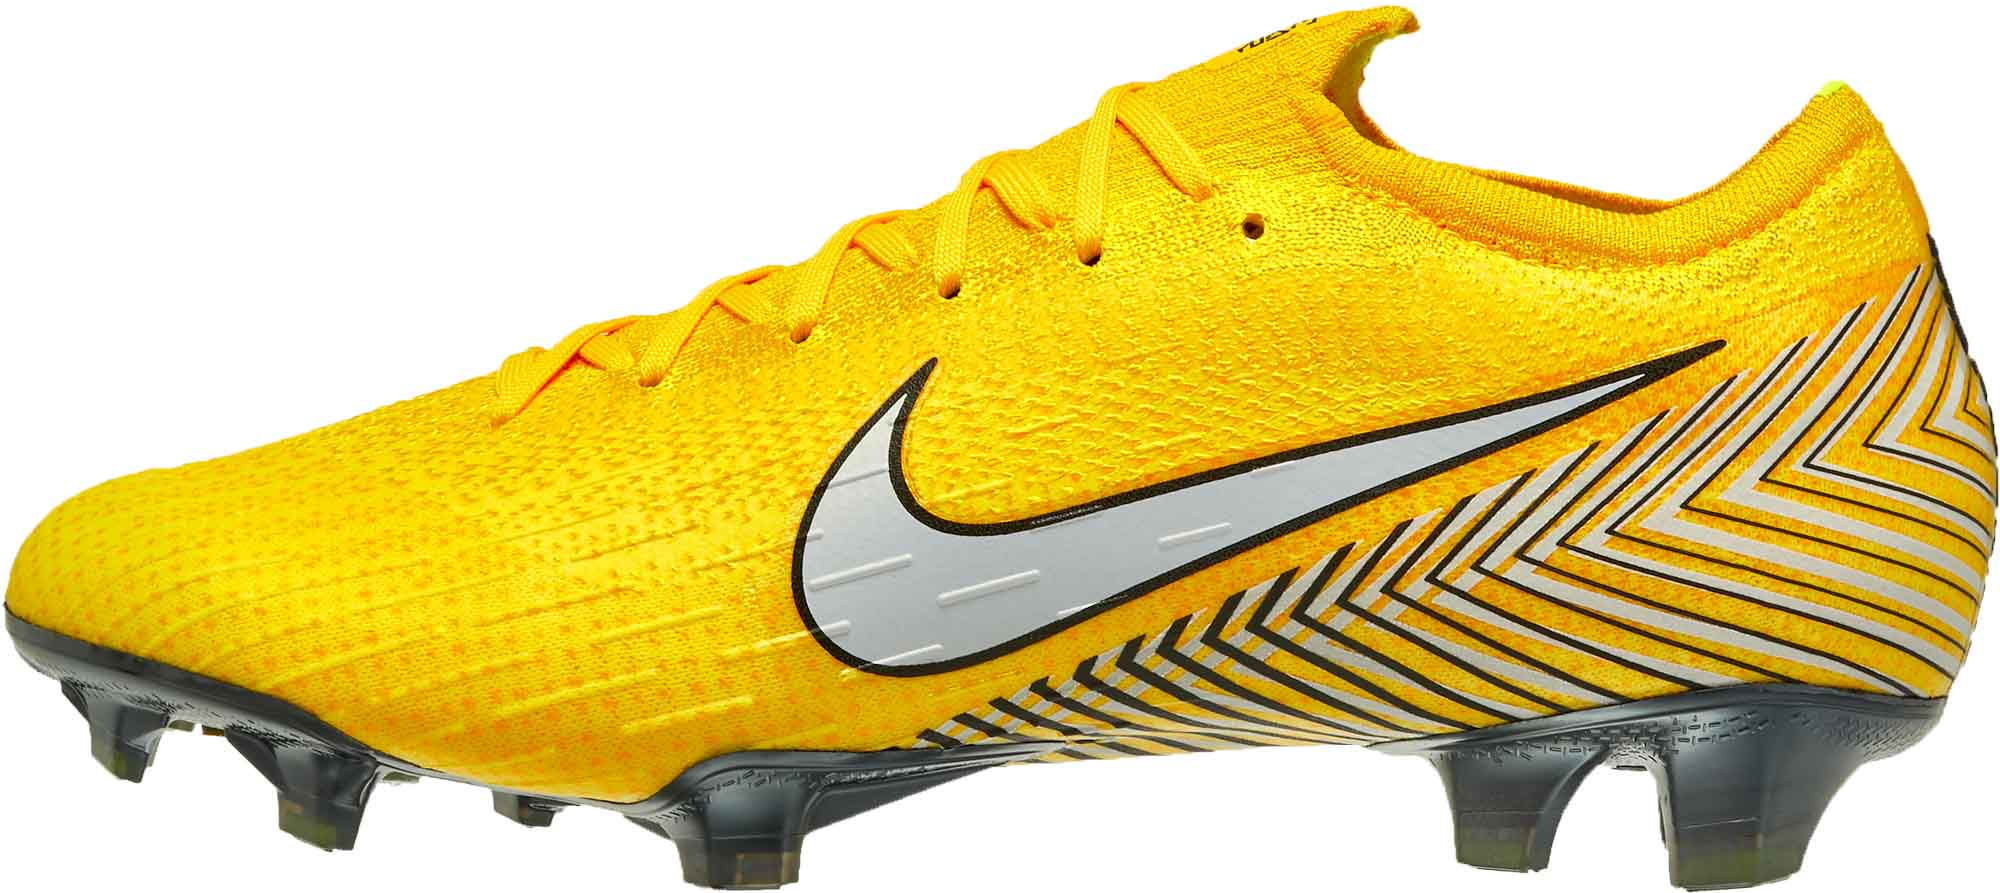 c5993ecadf Home / Shop By Brand / Nike Soccer / Nike Soccer Shoes / Nike Mercurial ...